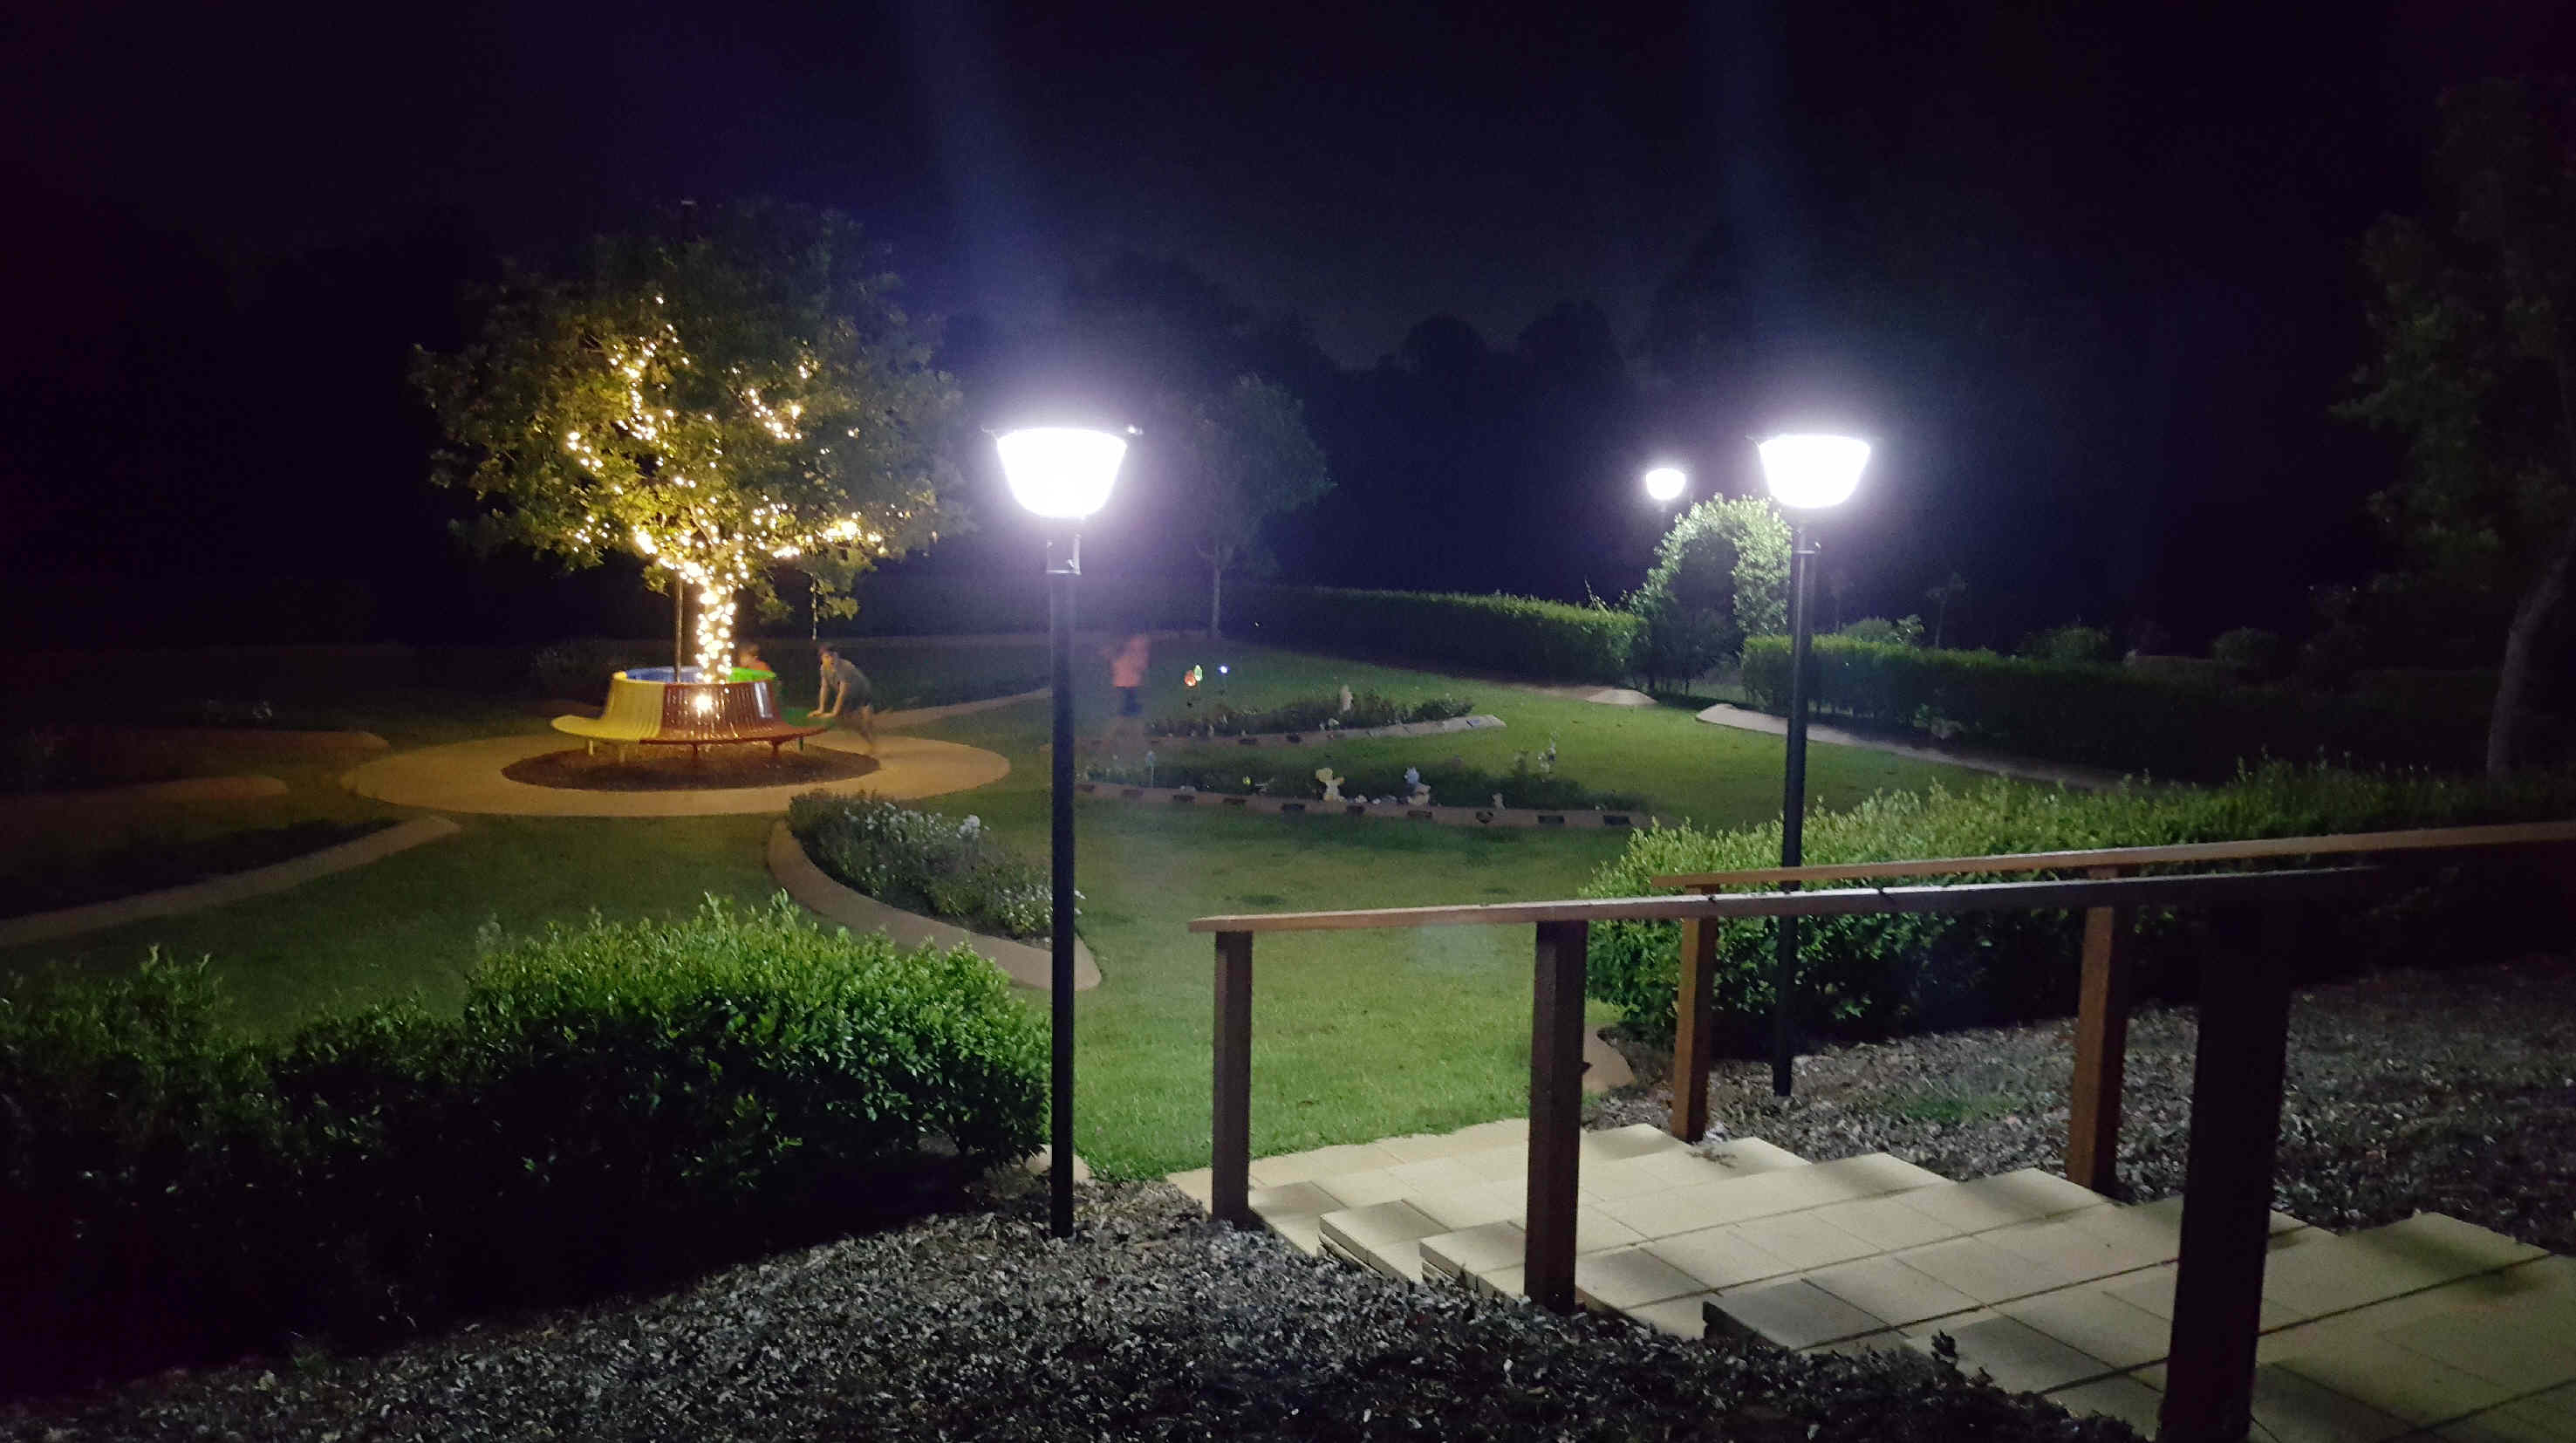 Buy quality solar lights blackfrog solar solar lights button to view our range of high quality solar powered post lights blackfrog solar lights aloadofball Images